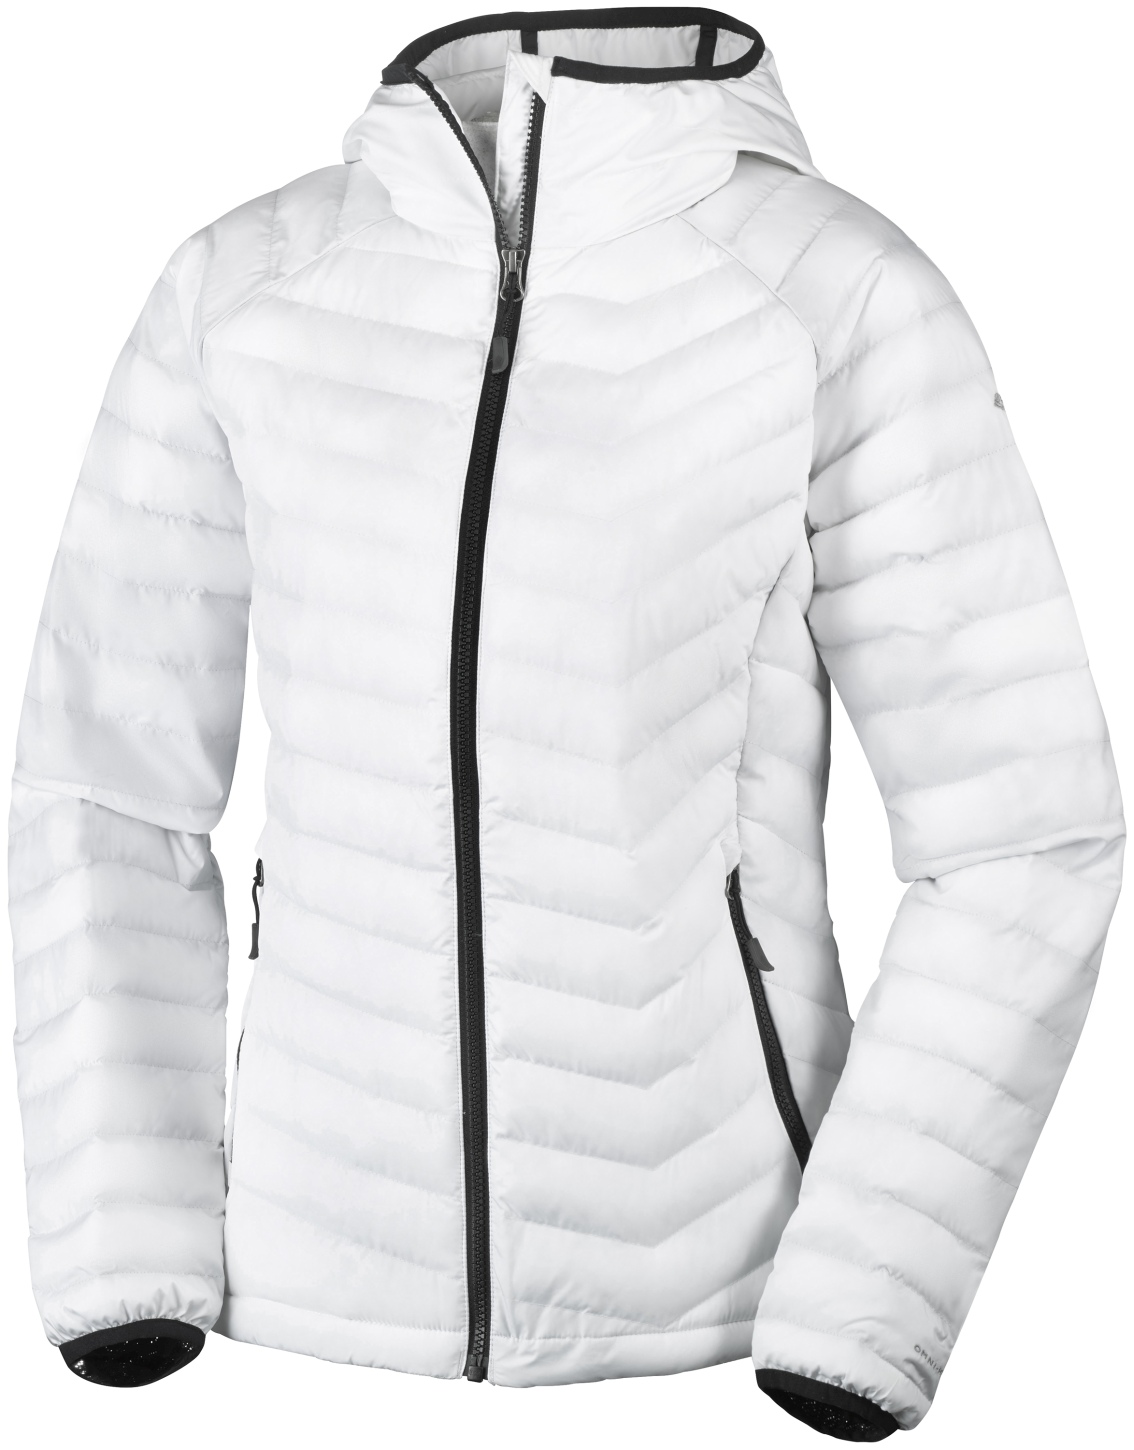 Columbia Powder Lite Jacke mit Kapuze für Damen White, Black-30